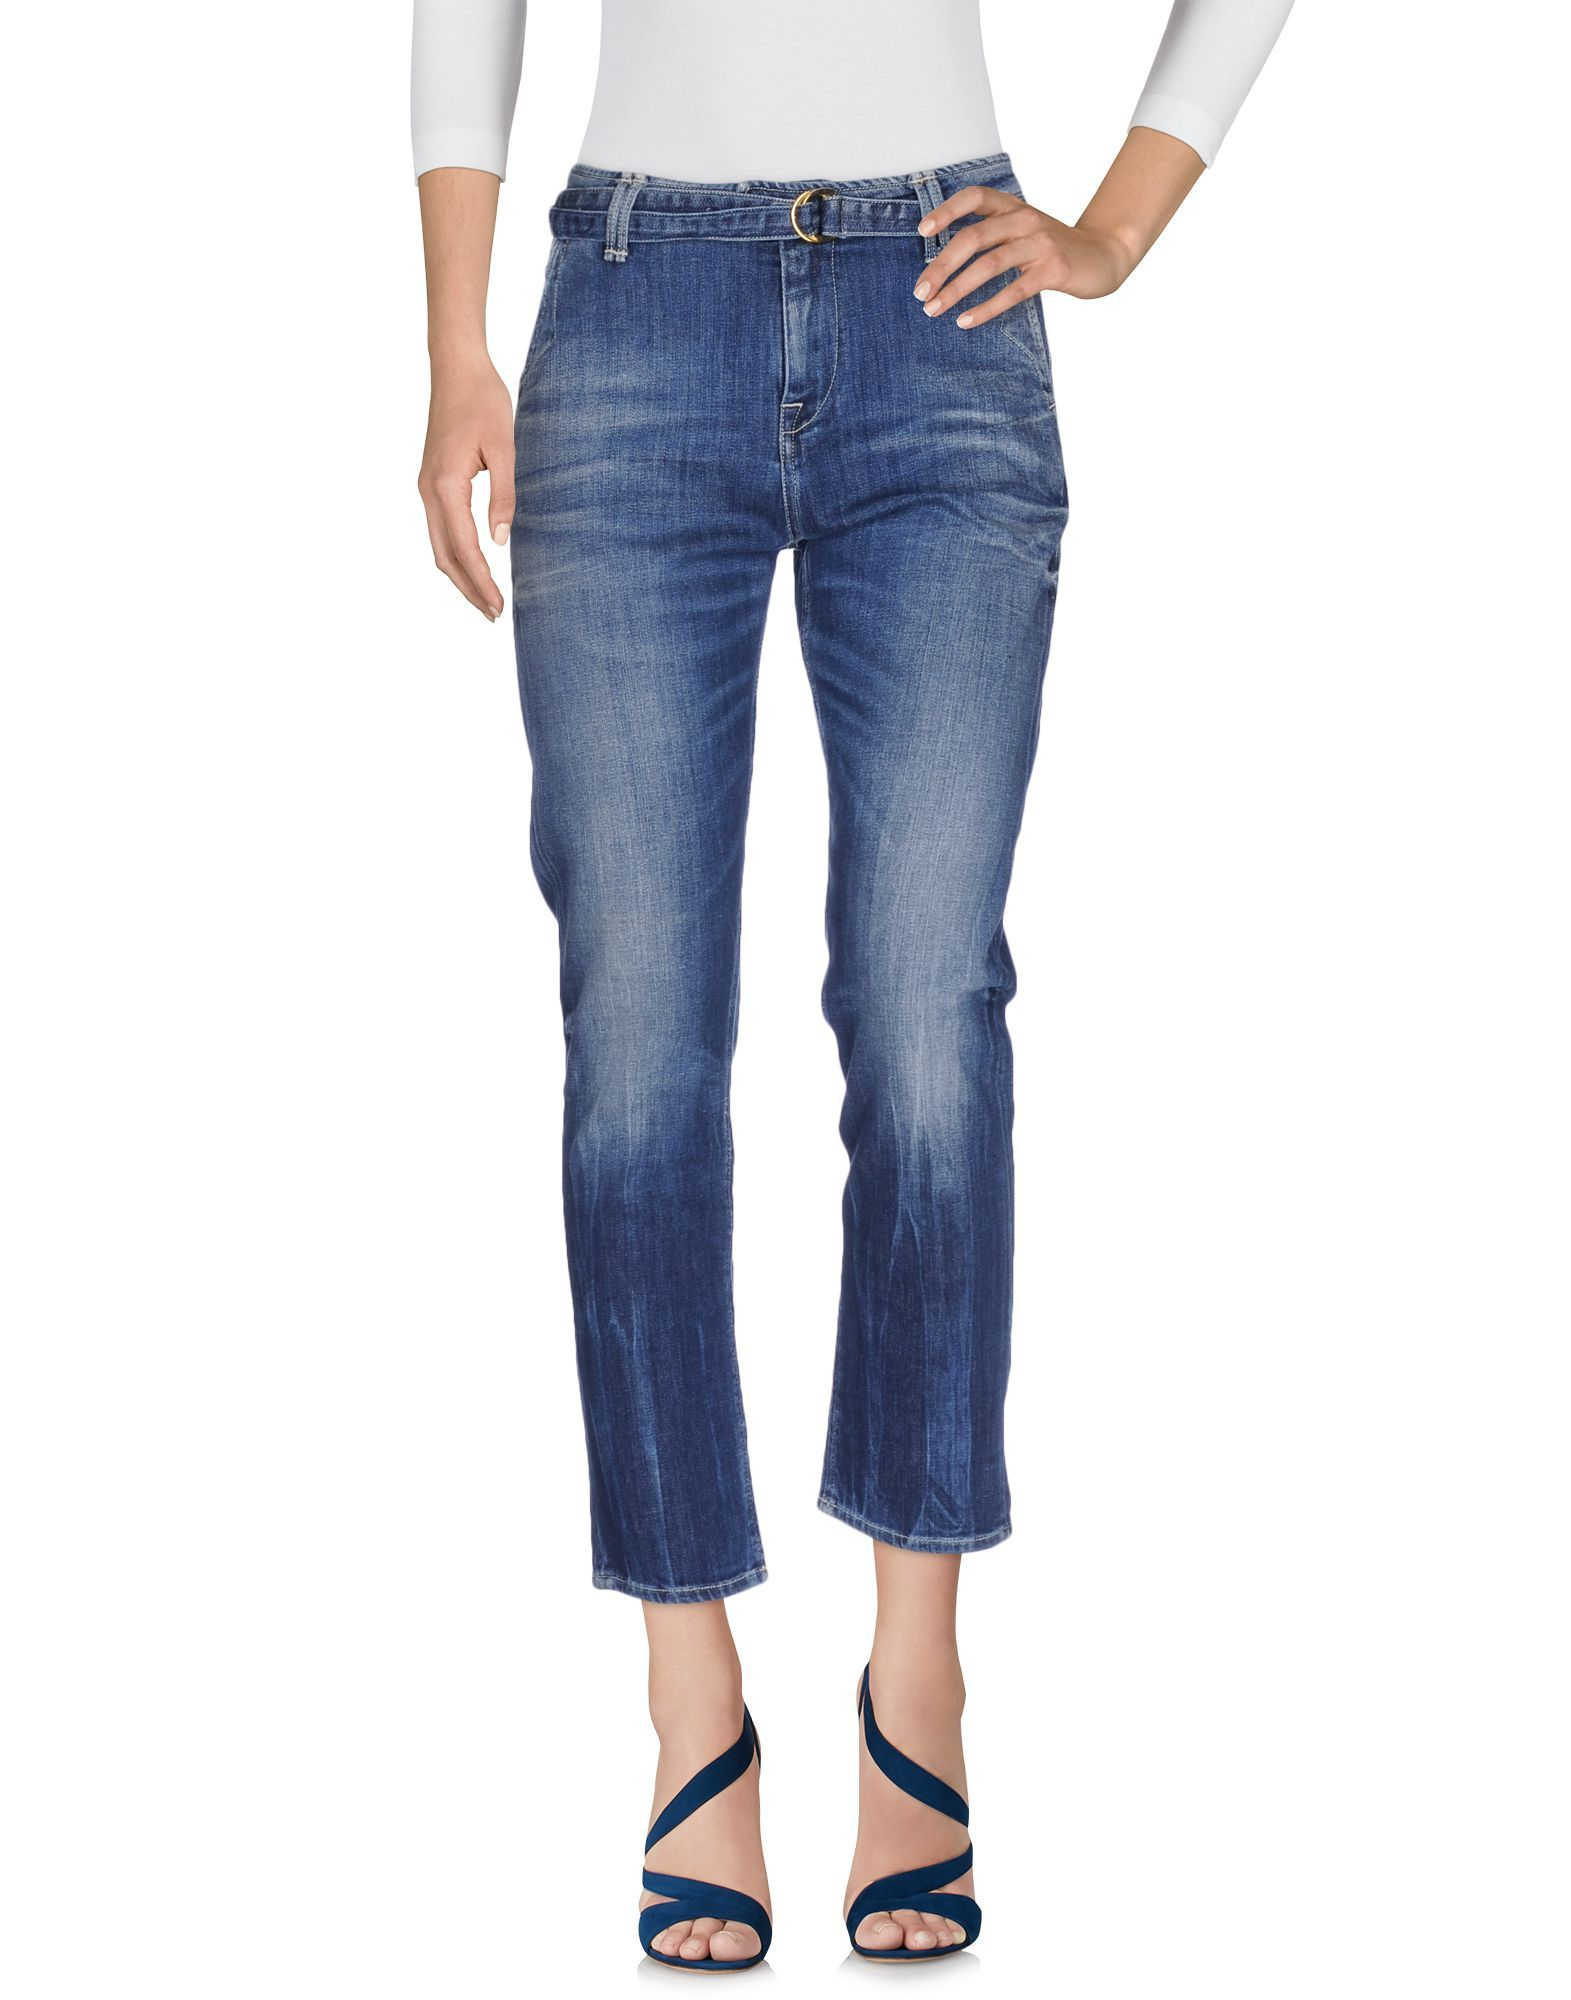 Cycle Blue Cotton Cropped Jeans